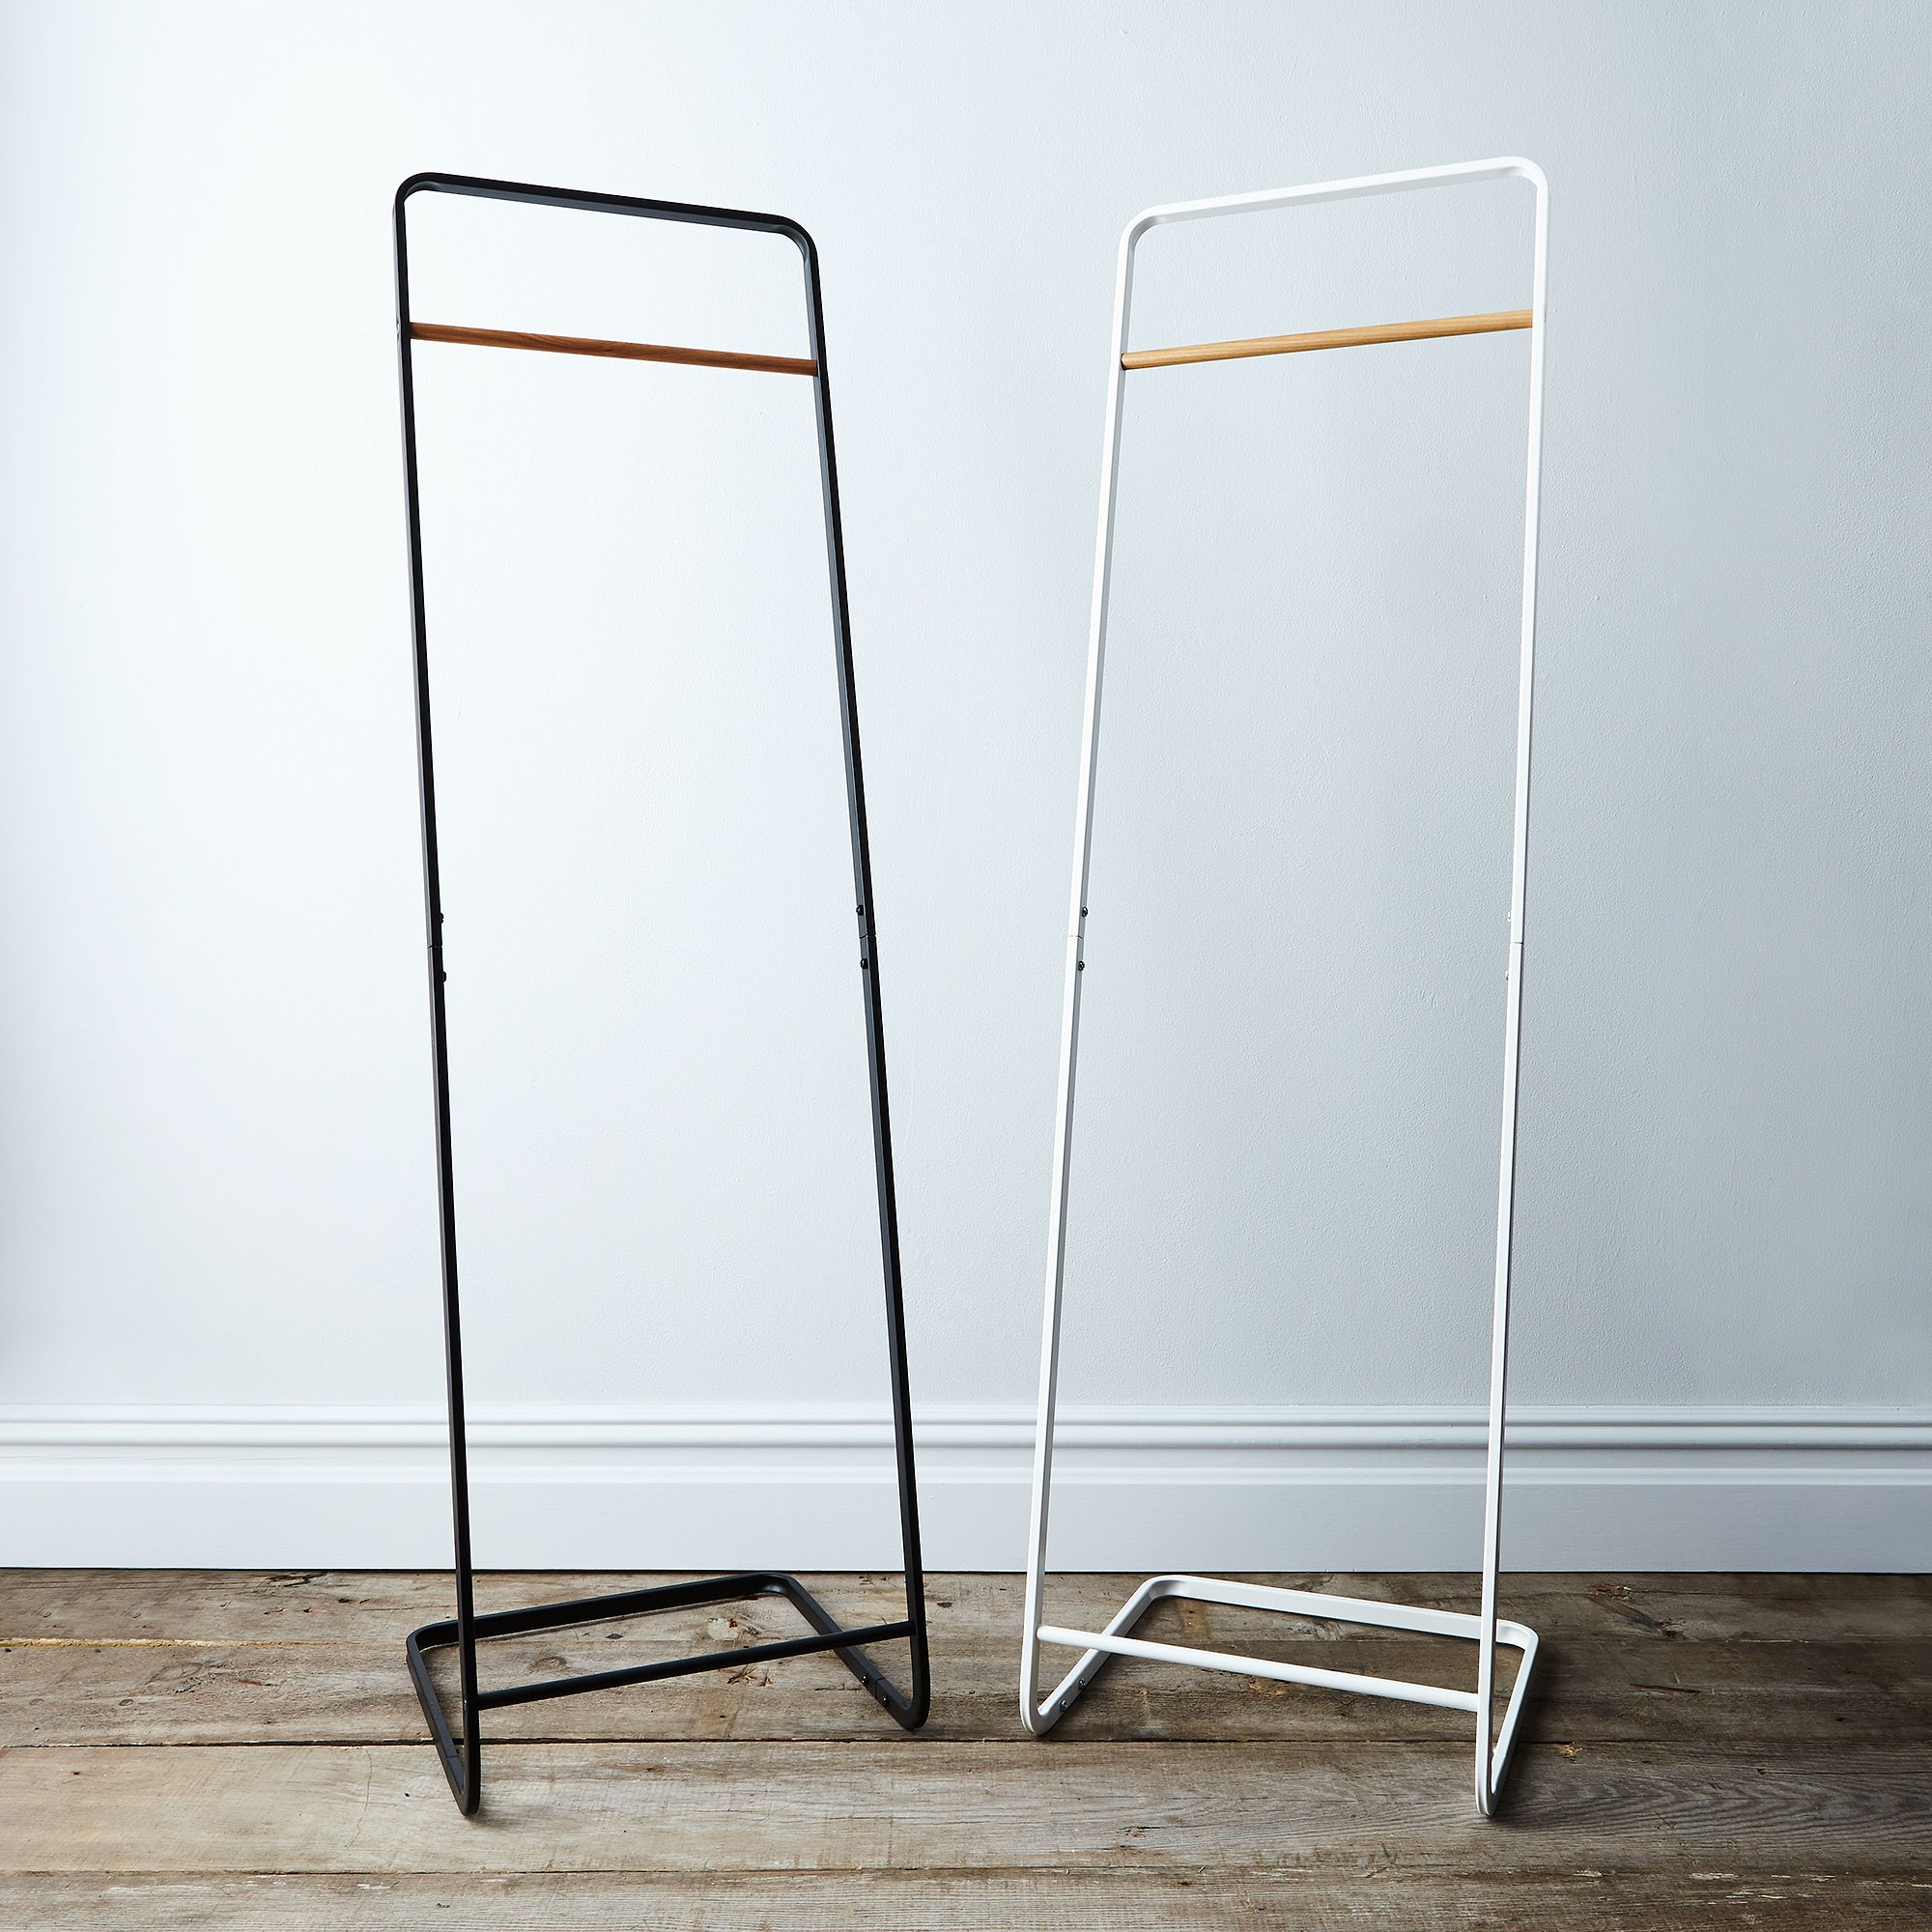 pin metal ikea when to wall grundtal use dry in flat not clothes shower rack folds mount drying